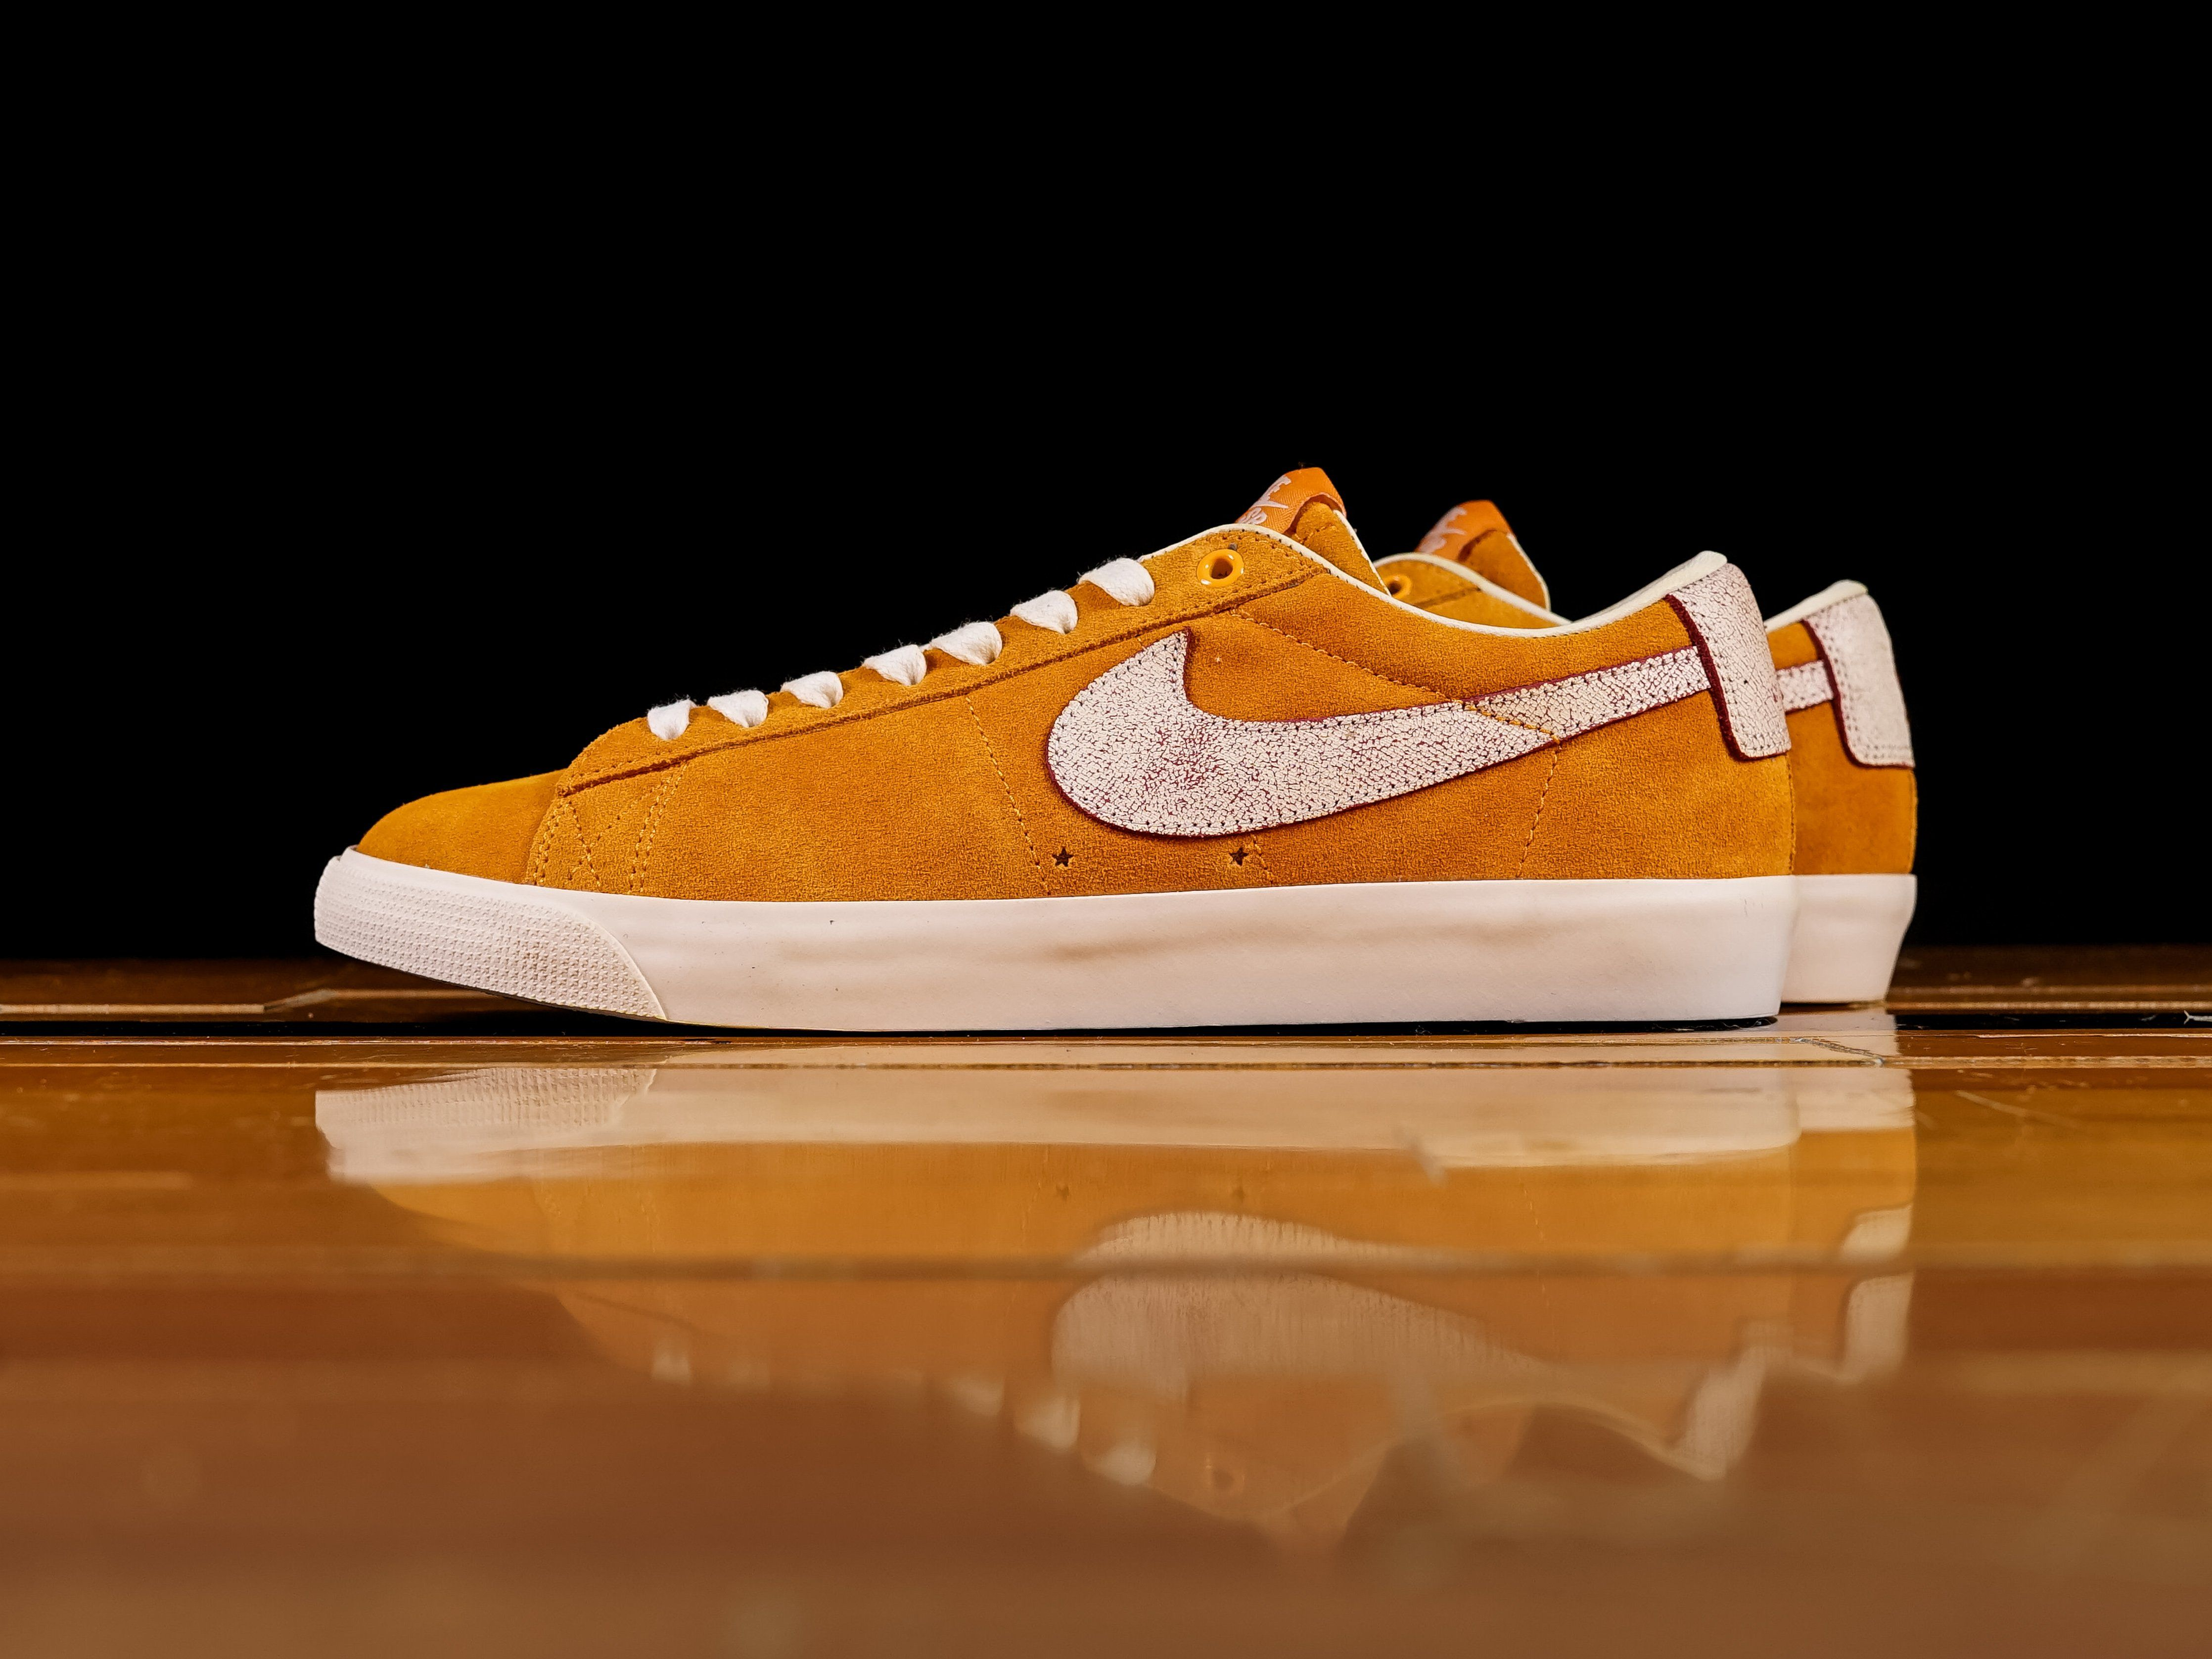 49f16704ca3 Men s Nike SB Blazer Zoom Low  Bruised Peach   716890-816 ...